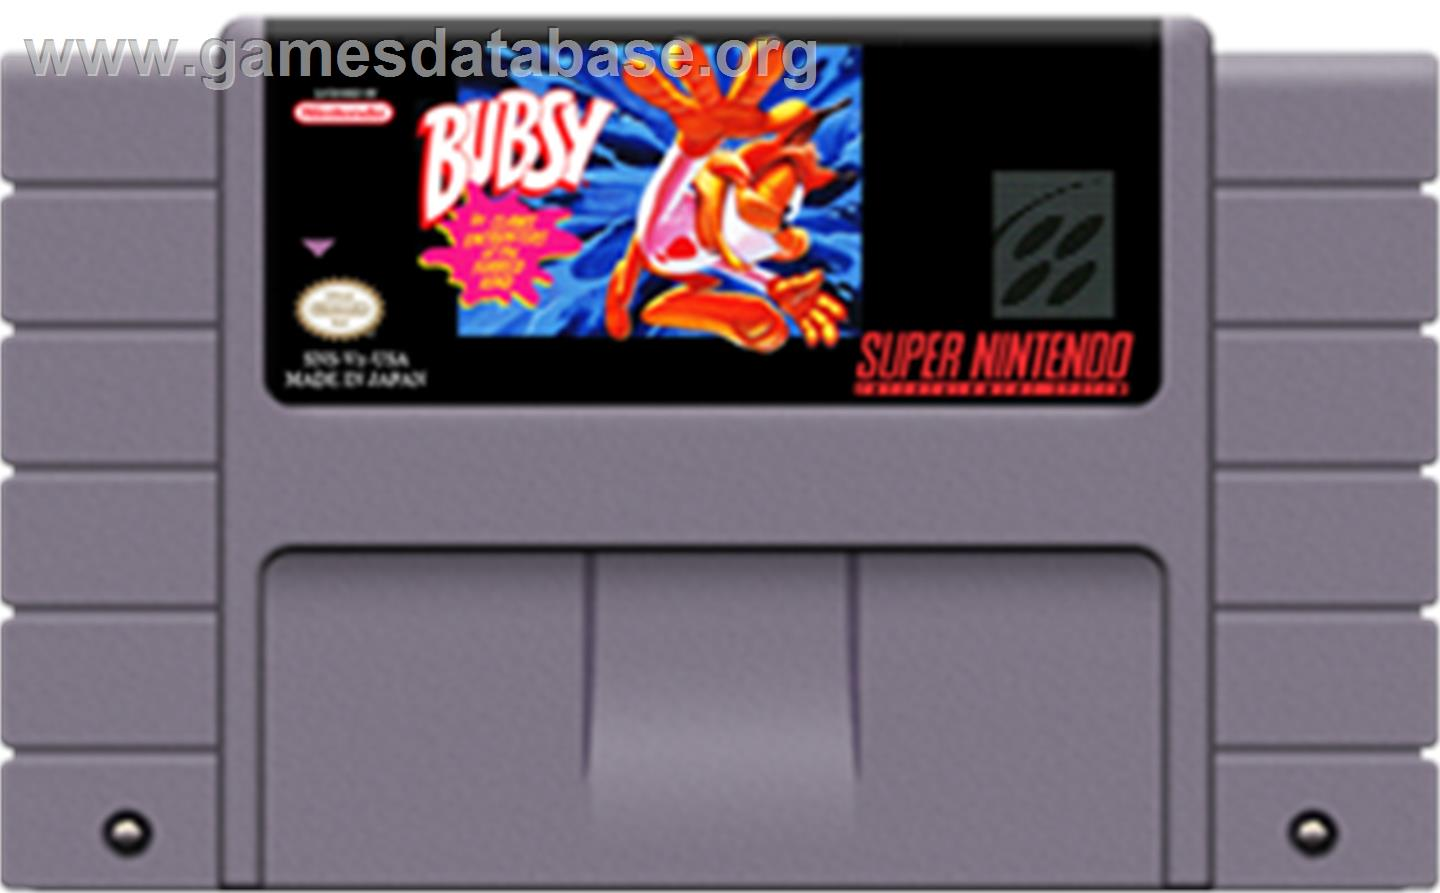 Bubsy in: Claws Encounters of the Furred Kind - Nintendo SNES - Artwork - Cartridge